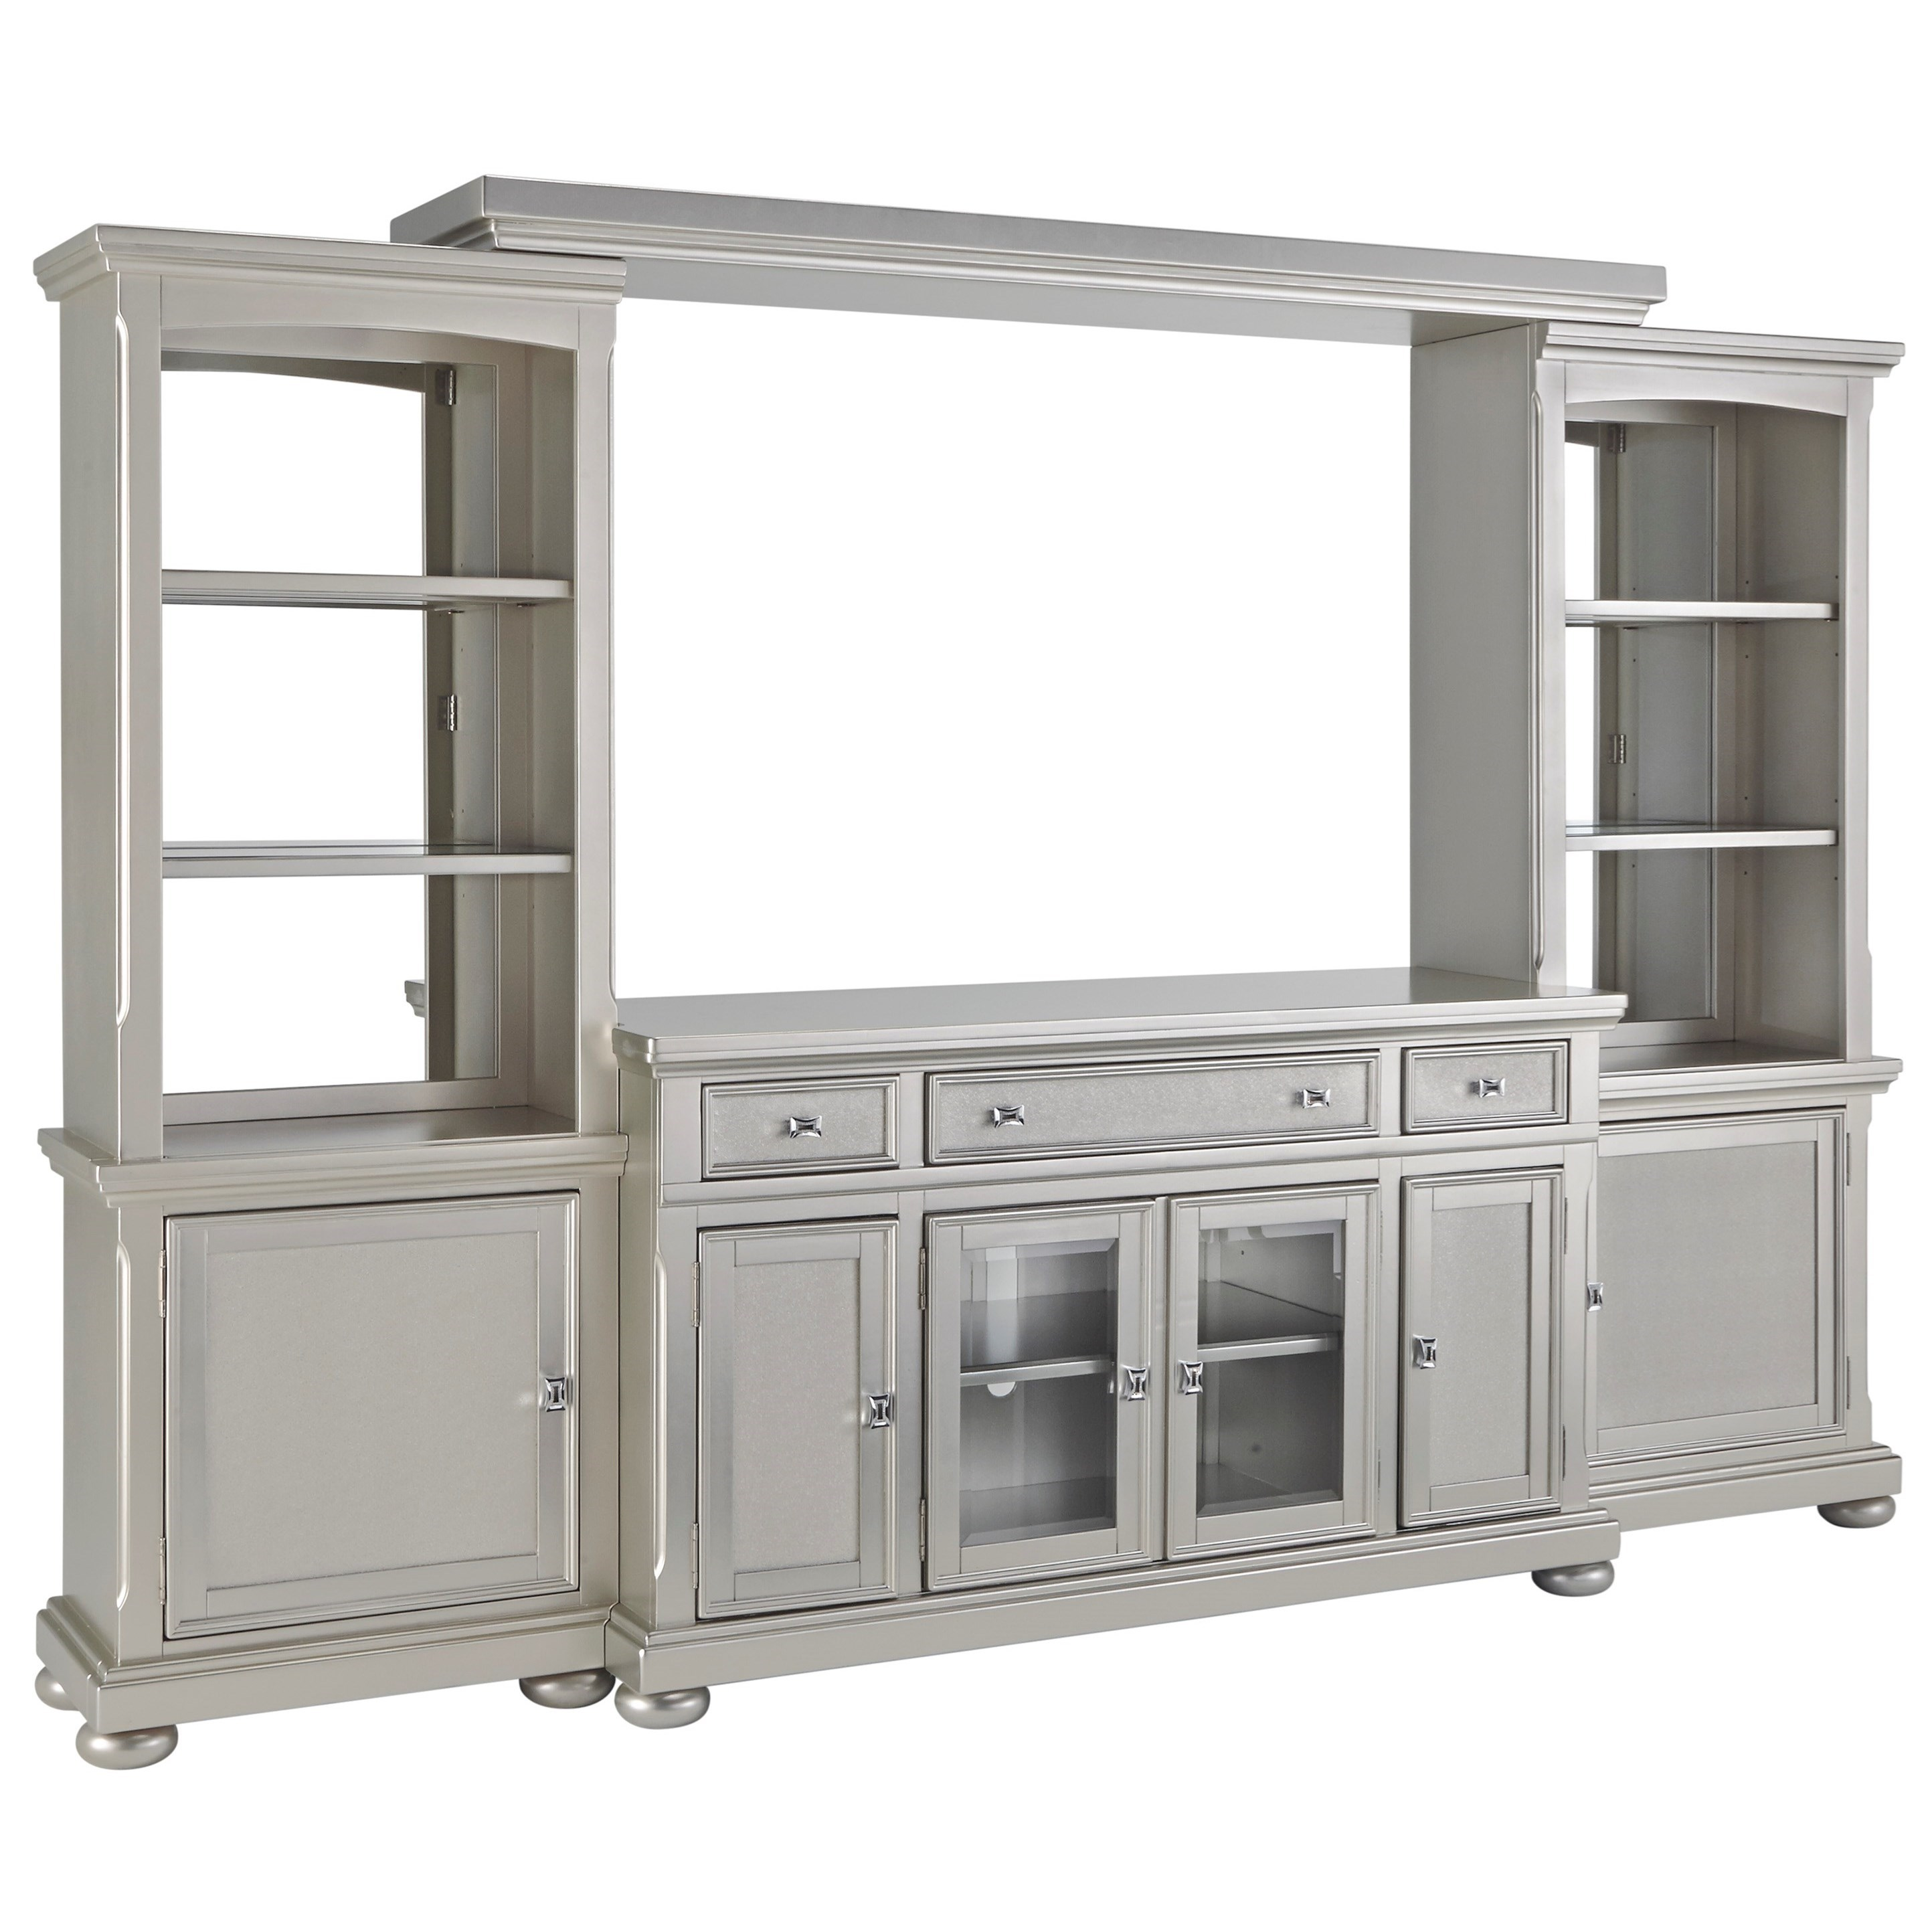 twin design oak bookshelves bookcases size headboards head by vintage storage full shelves platform office bookshelf pics amys signature frame inspiration king wood captains for bookcase ashley medium of bed xl breathtaking furniture queen headboard with